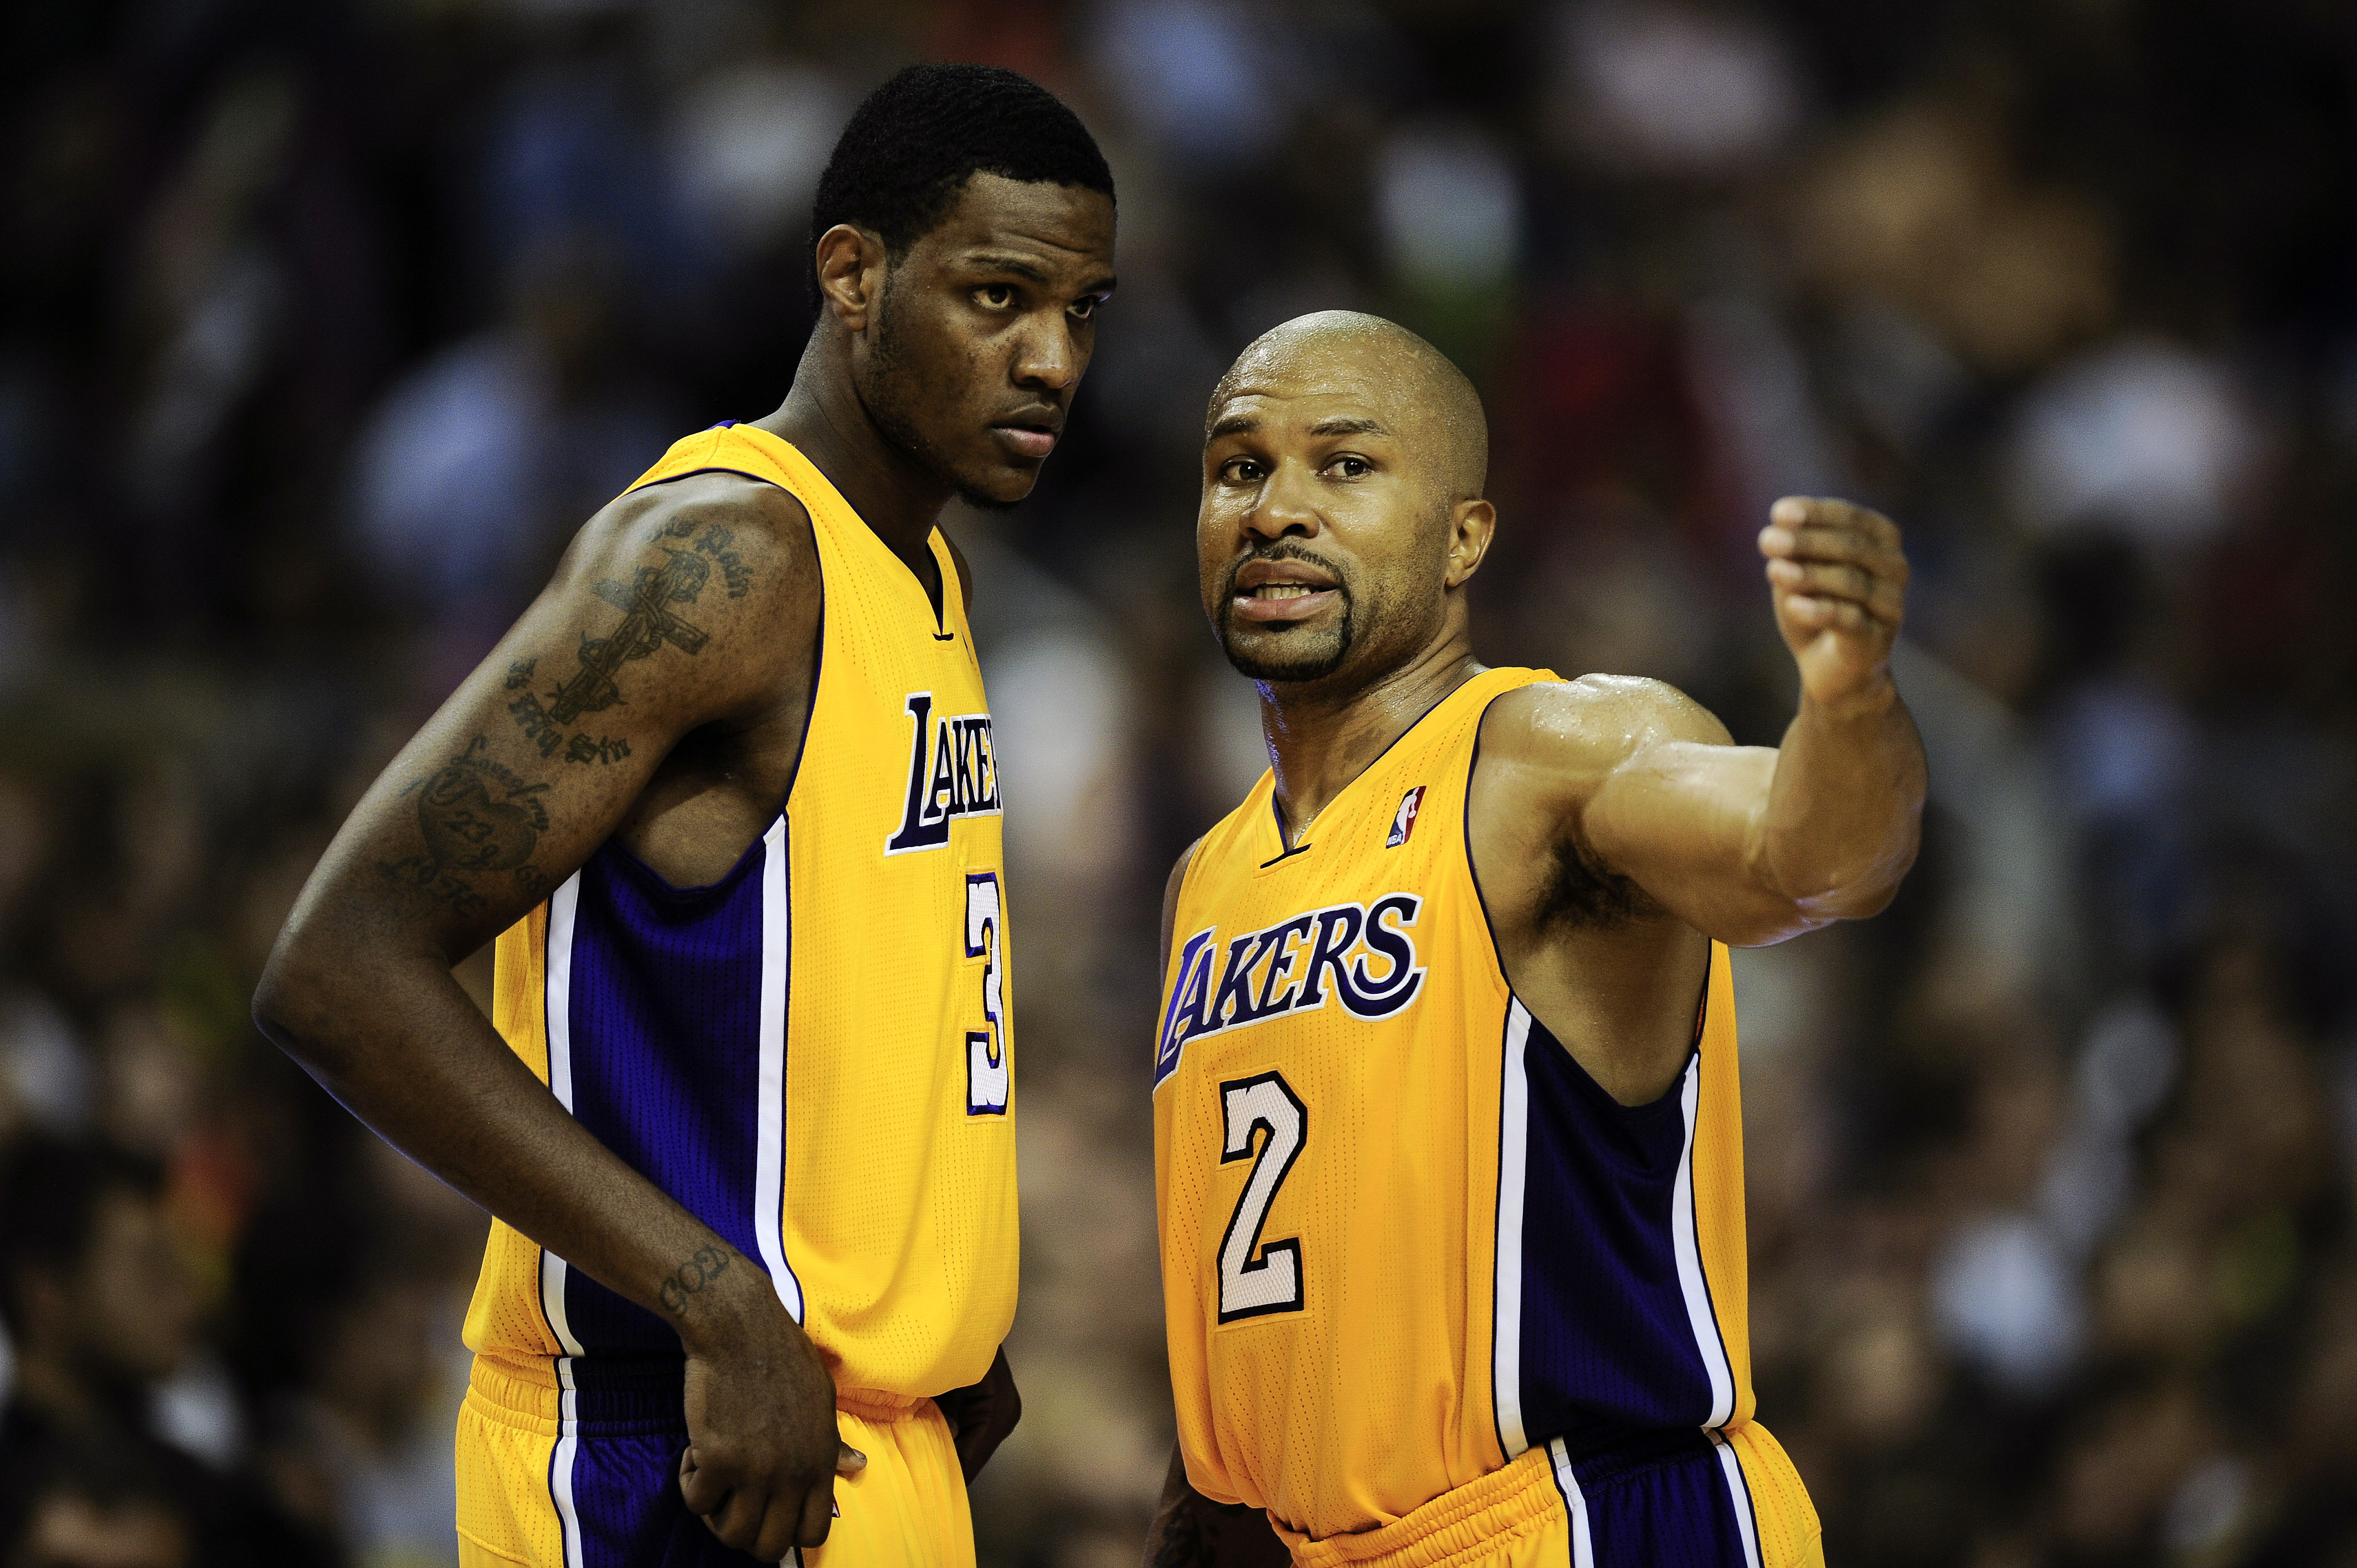 BARCELONA, SPAIN - OCTOBER 07:  Devin Ebanks (L) #3 of the Los Angeles Lakers chats with his teammate Derek Fisher #2 during the NBA Europe Live match between Los Angeles Lakers and Regal FC Barcelona at the at Palau Blaugrana on October 7, 2010 in Barcel